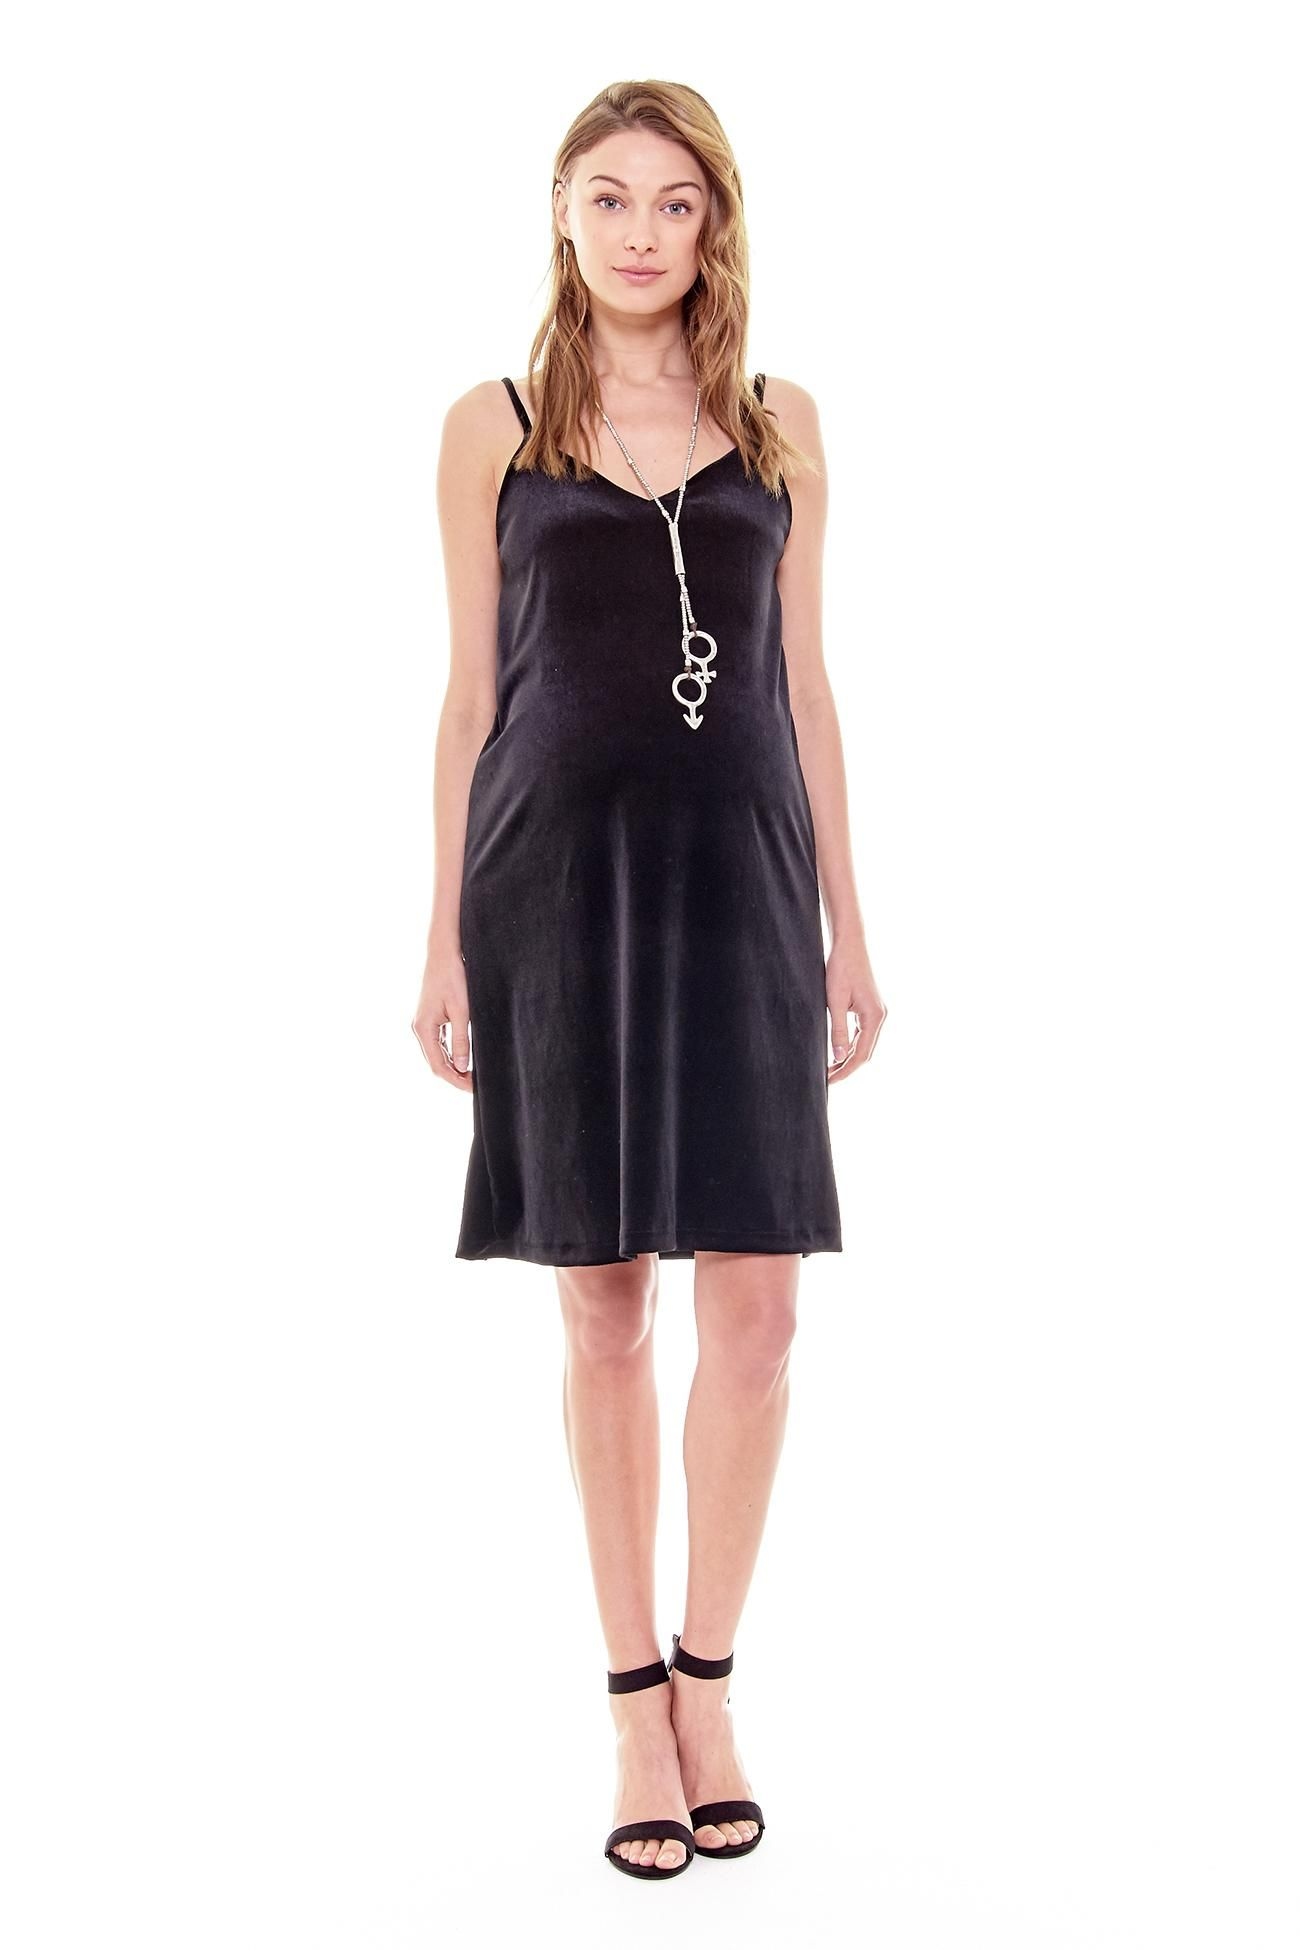 Buy marin maternitydress in black u blue colors at only from